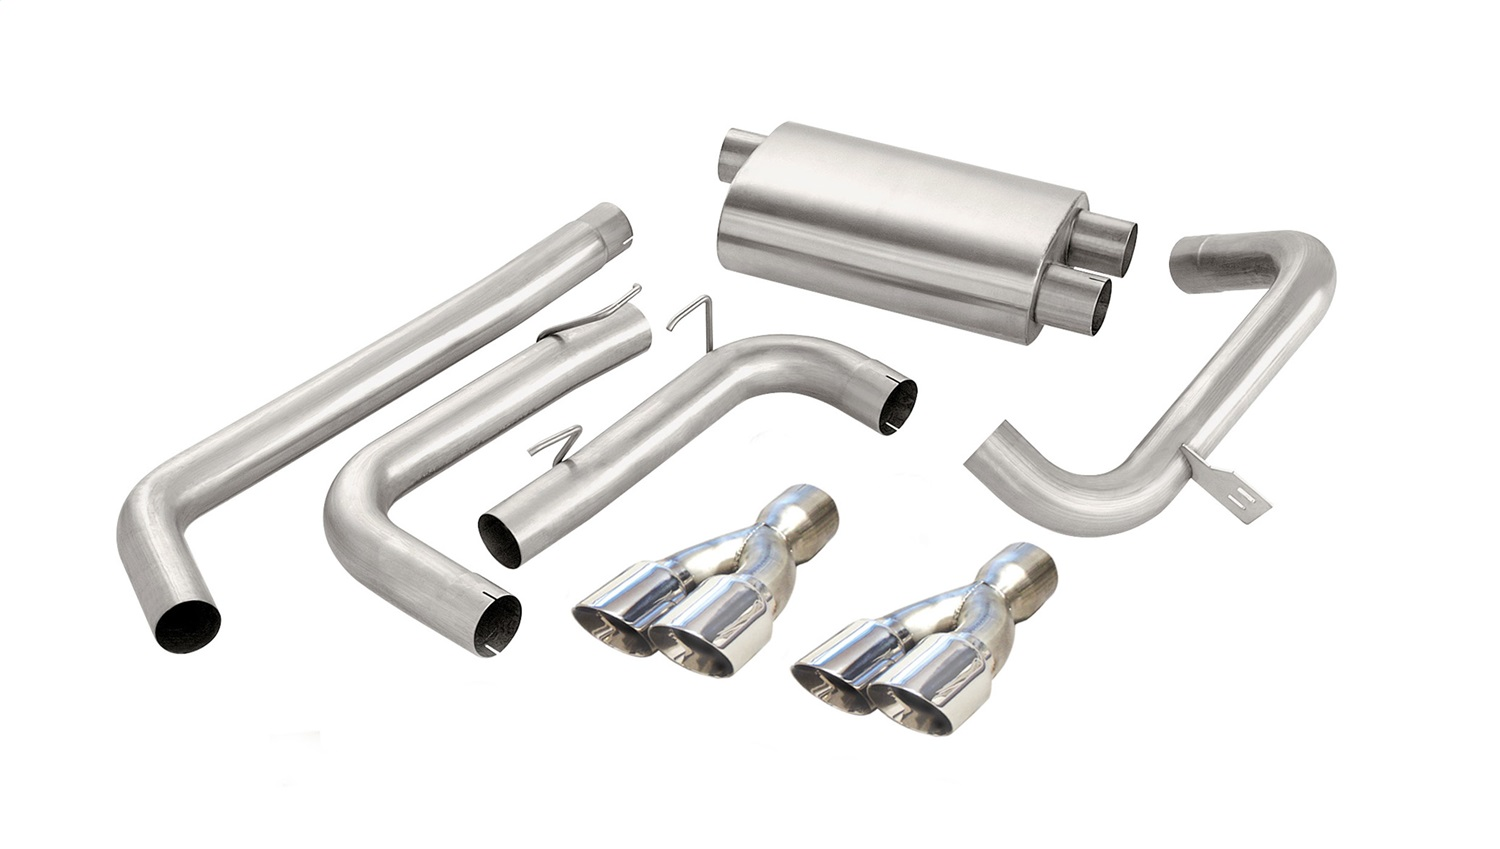 Corsa Performance 14143 Sport Cat-Back Exhaust System Fits 98-02 Camaro Firebird